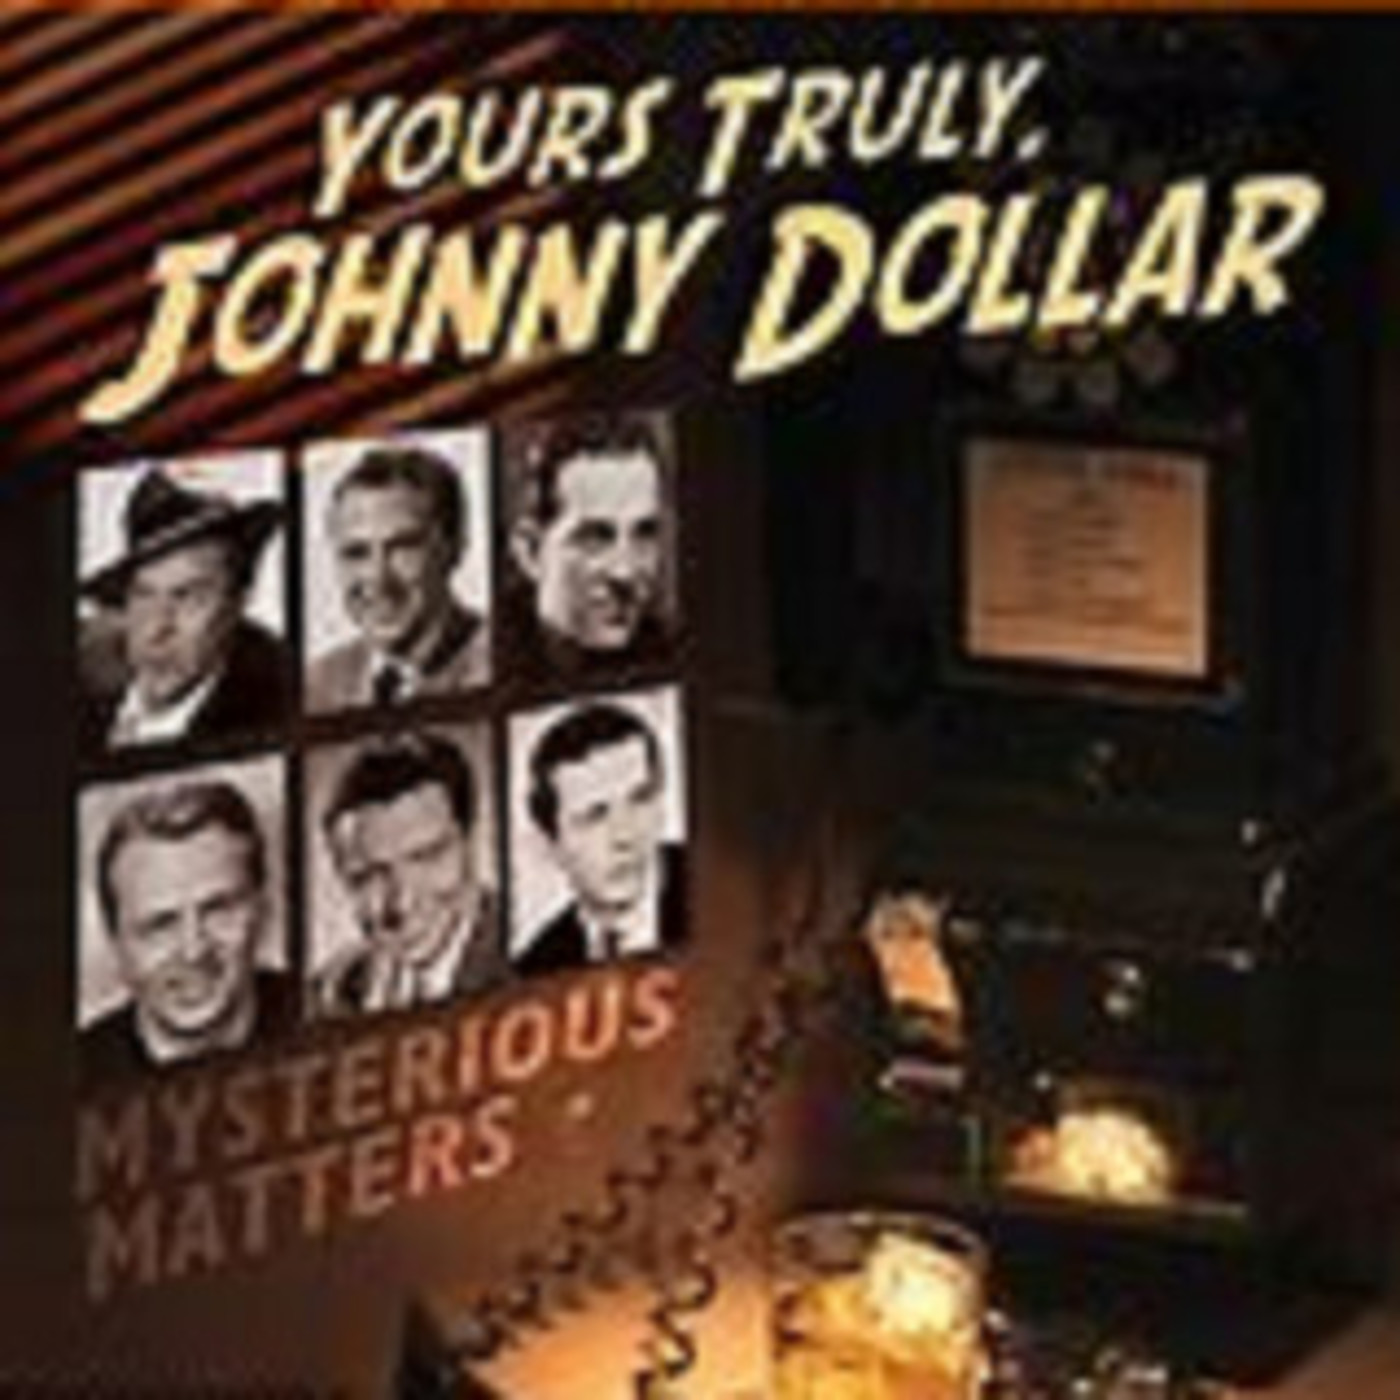 Yours Truly, Johnny Dollar - 080562, episode 803 - The Case of Trouble Matter